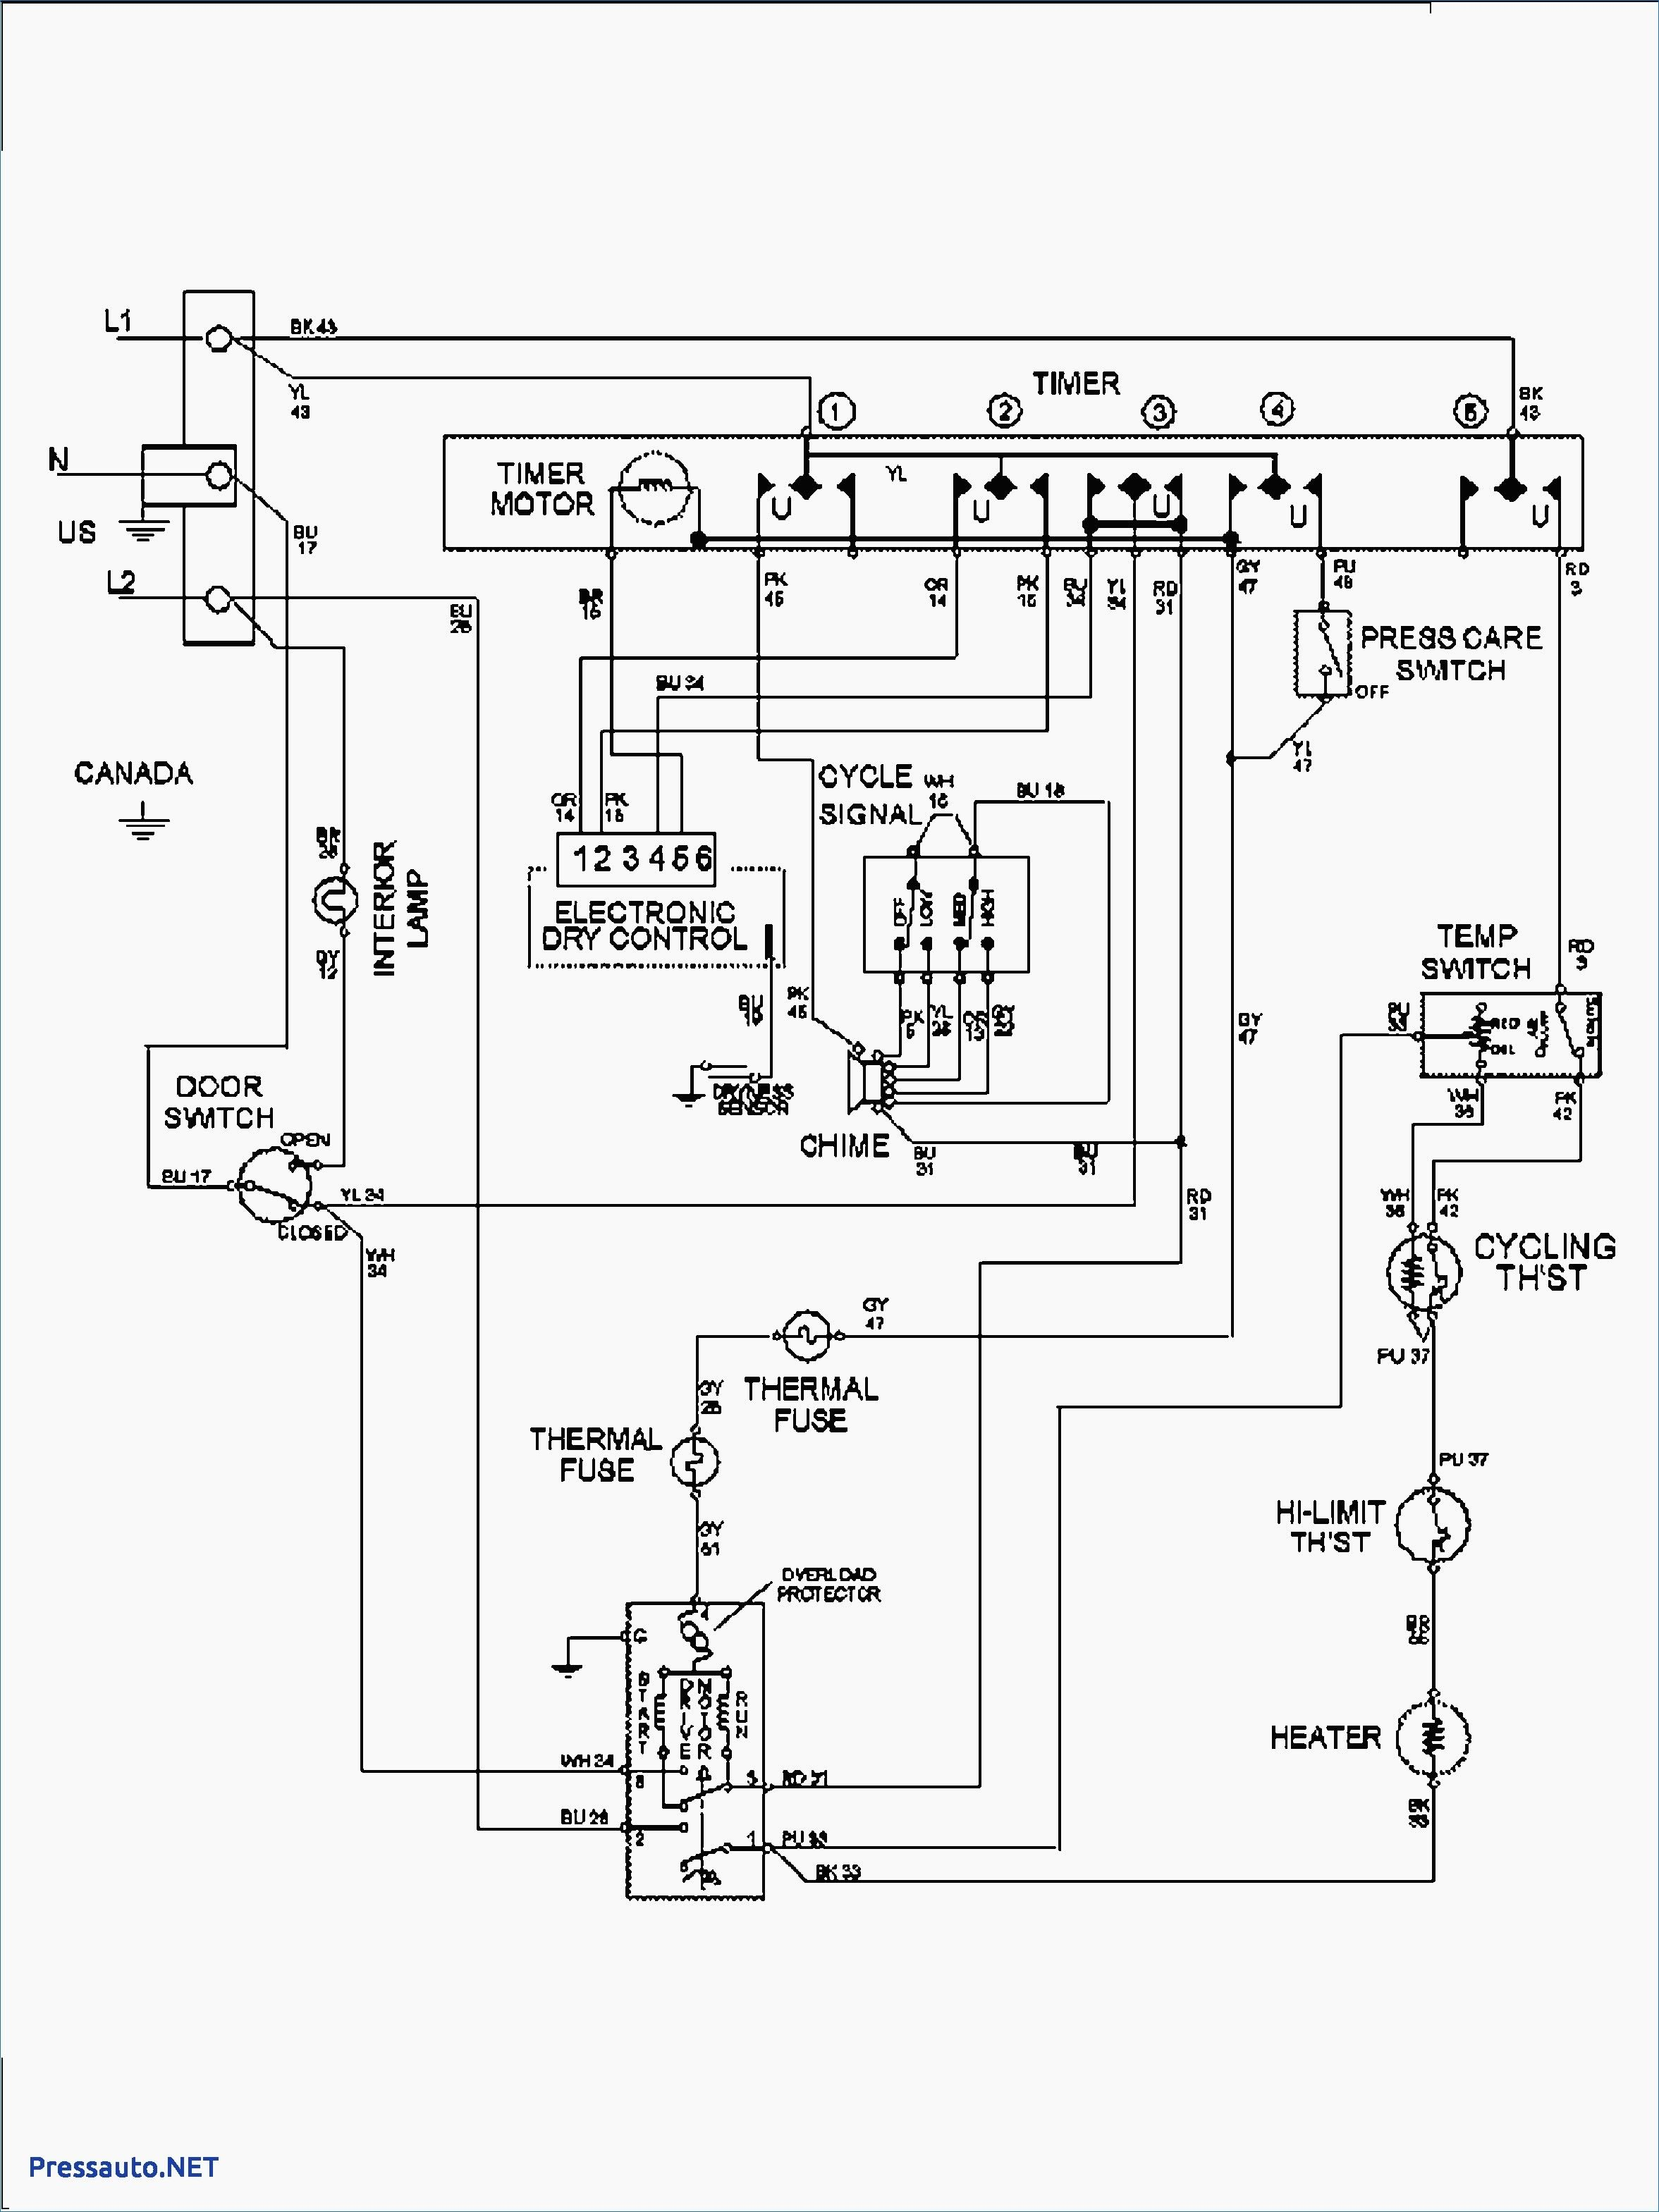 [DVZP_7254]   63B Semi Automatic Washing Machine Circuit Diagram | Wiring Resources | Whirlpool Semi Automatic Washing Machine Wiring Diagram |  | Wiring Resources